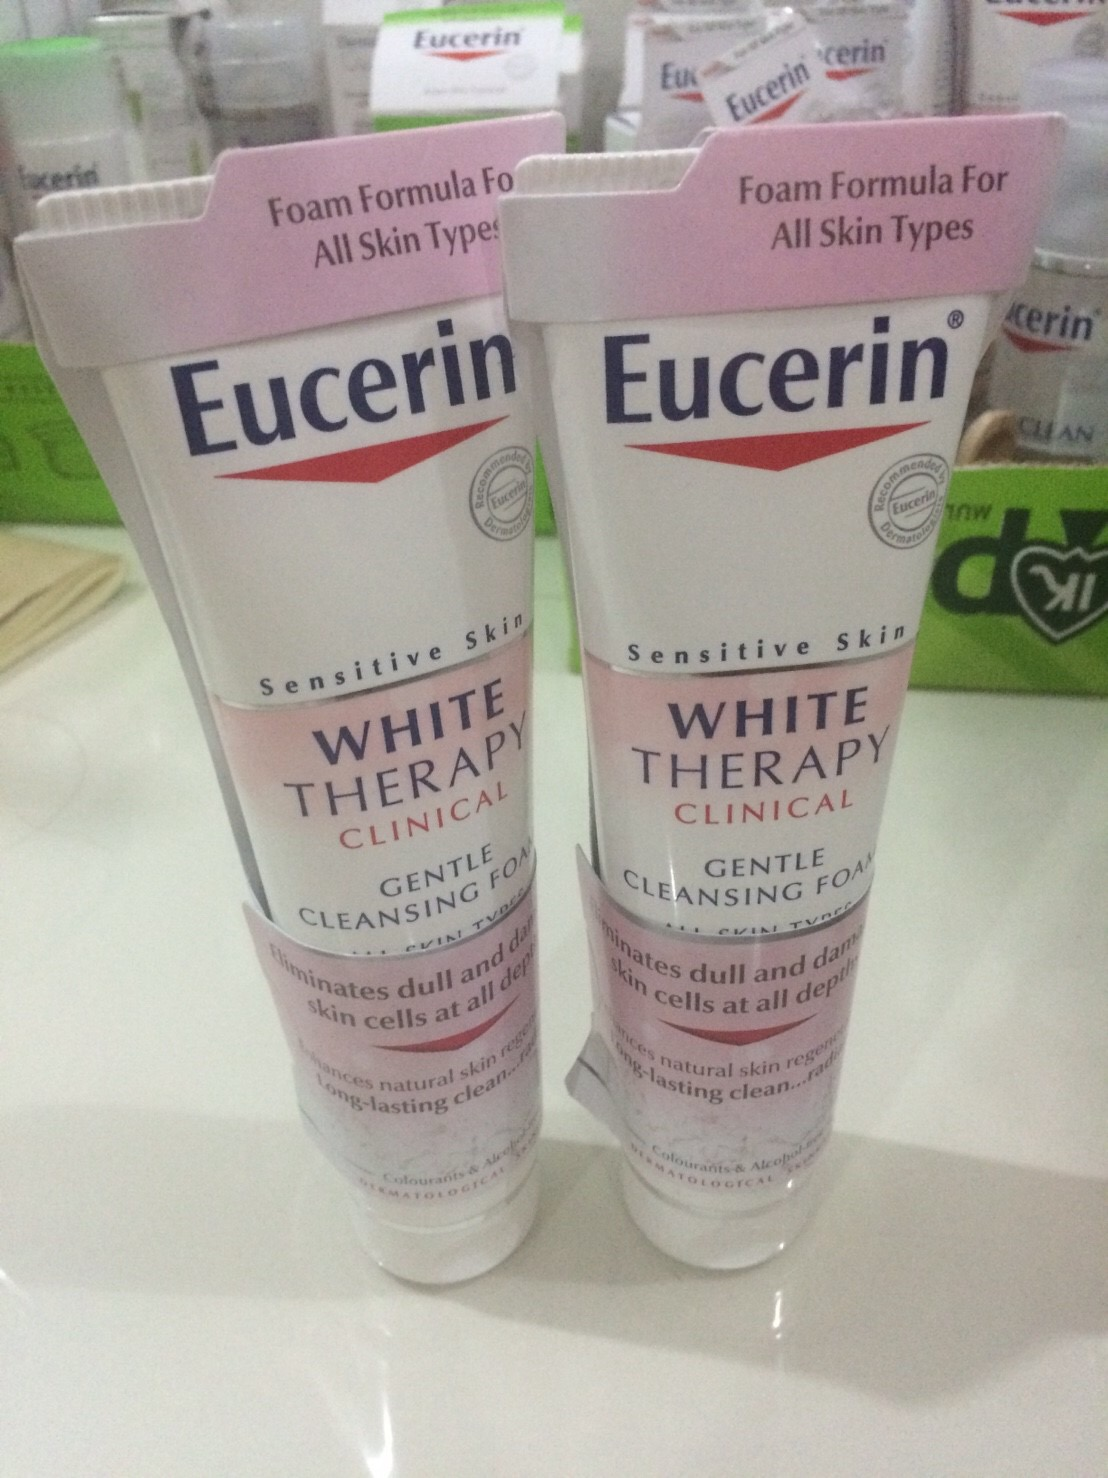 #Eucerin White Therapy Clinical Cleansing Foam 150 ml